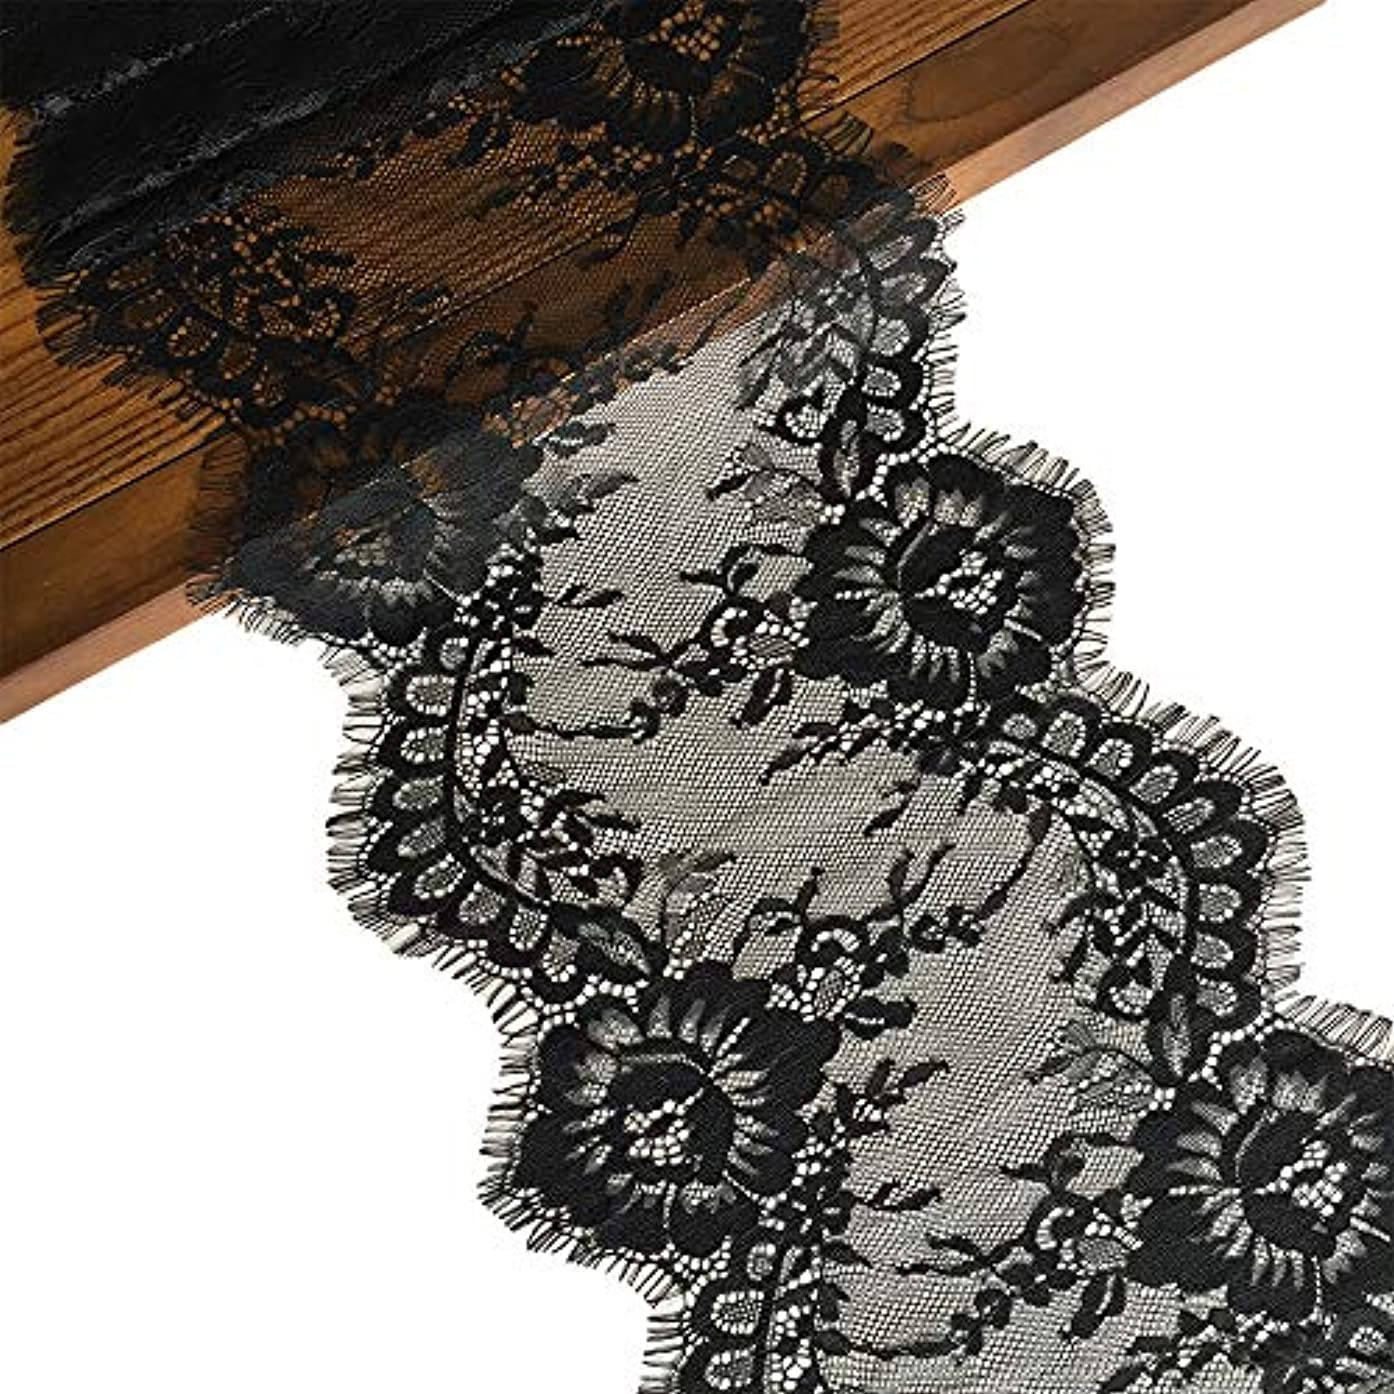 LaceRealm 9 Inch Wide Eyelash Lace Fabric Floral Pattern Lace Trims for Sewing Dress Home Decor Fabric & Textile Paints (Black)